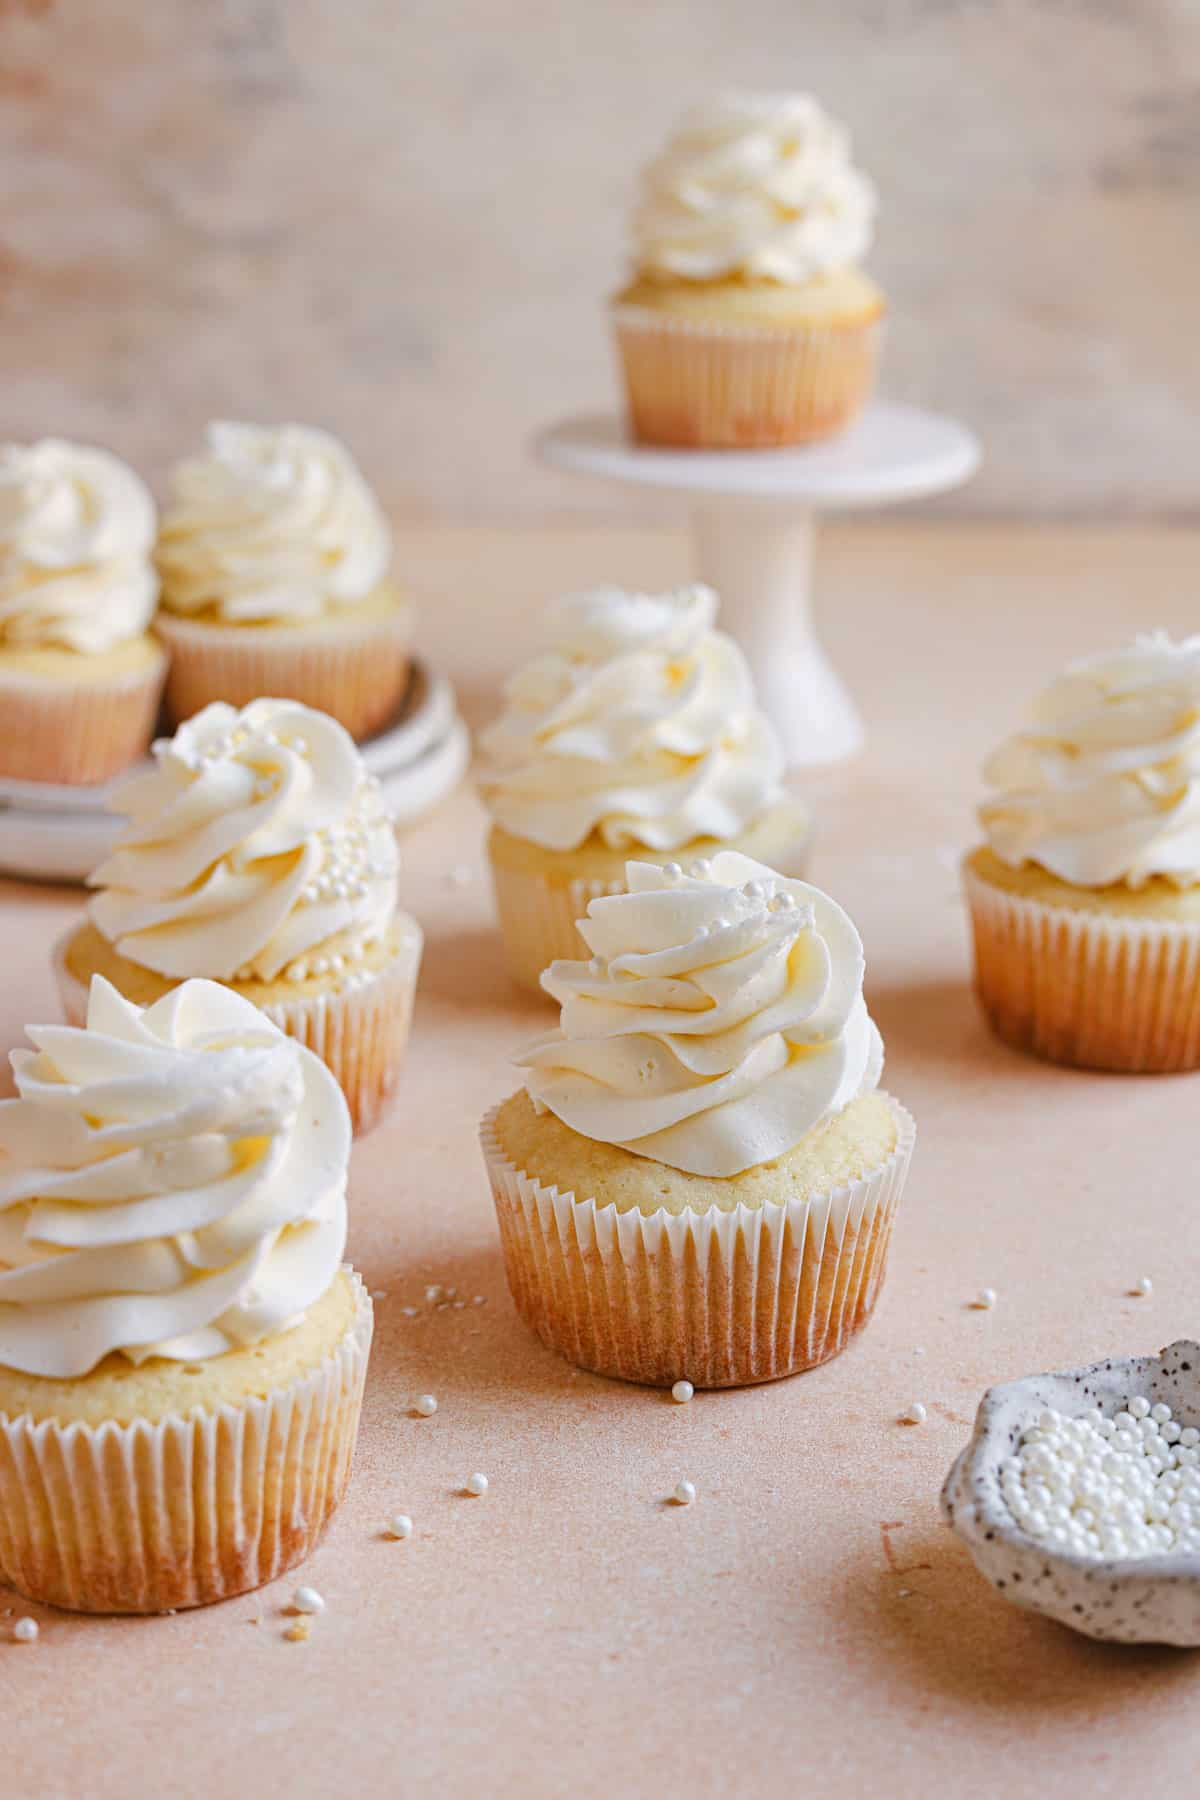 Moist vanilla cupcakes on a counter with a cupcake on a cake stand in the back.